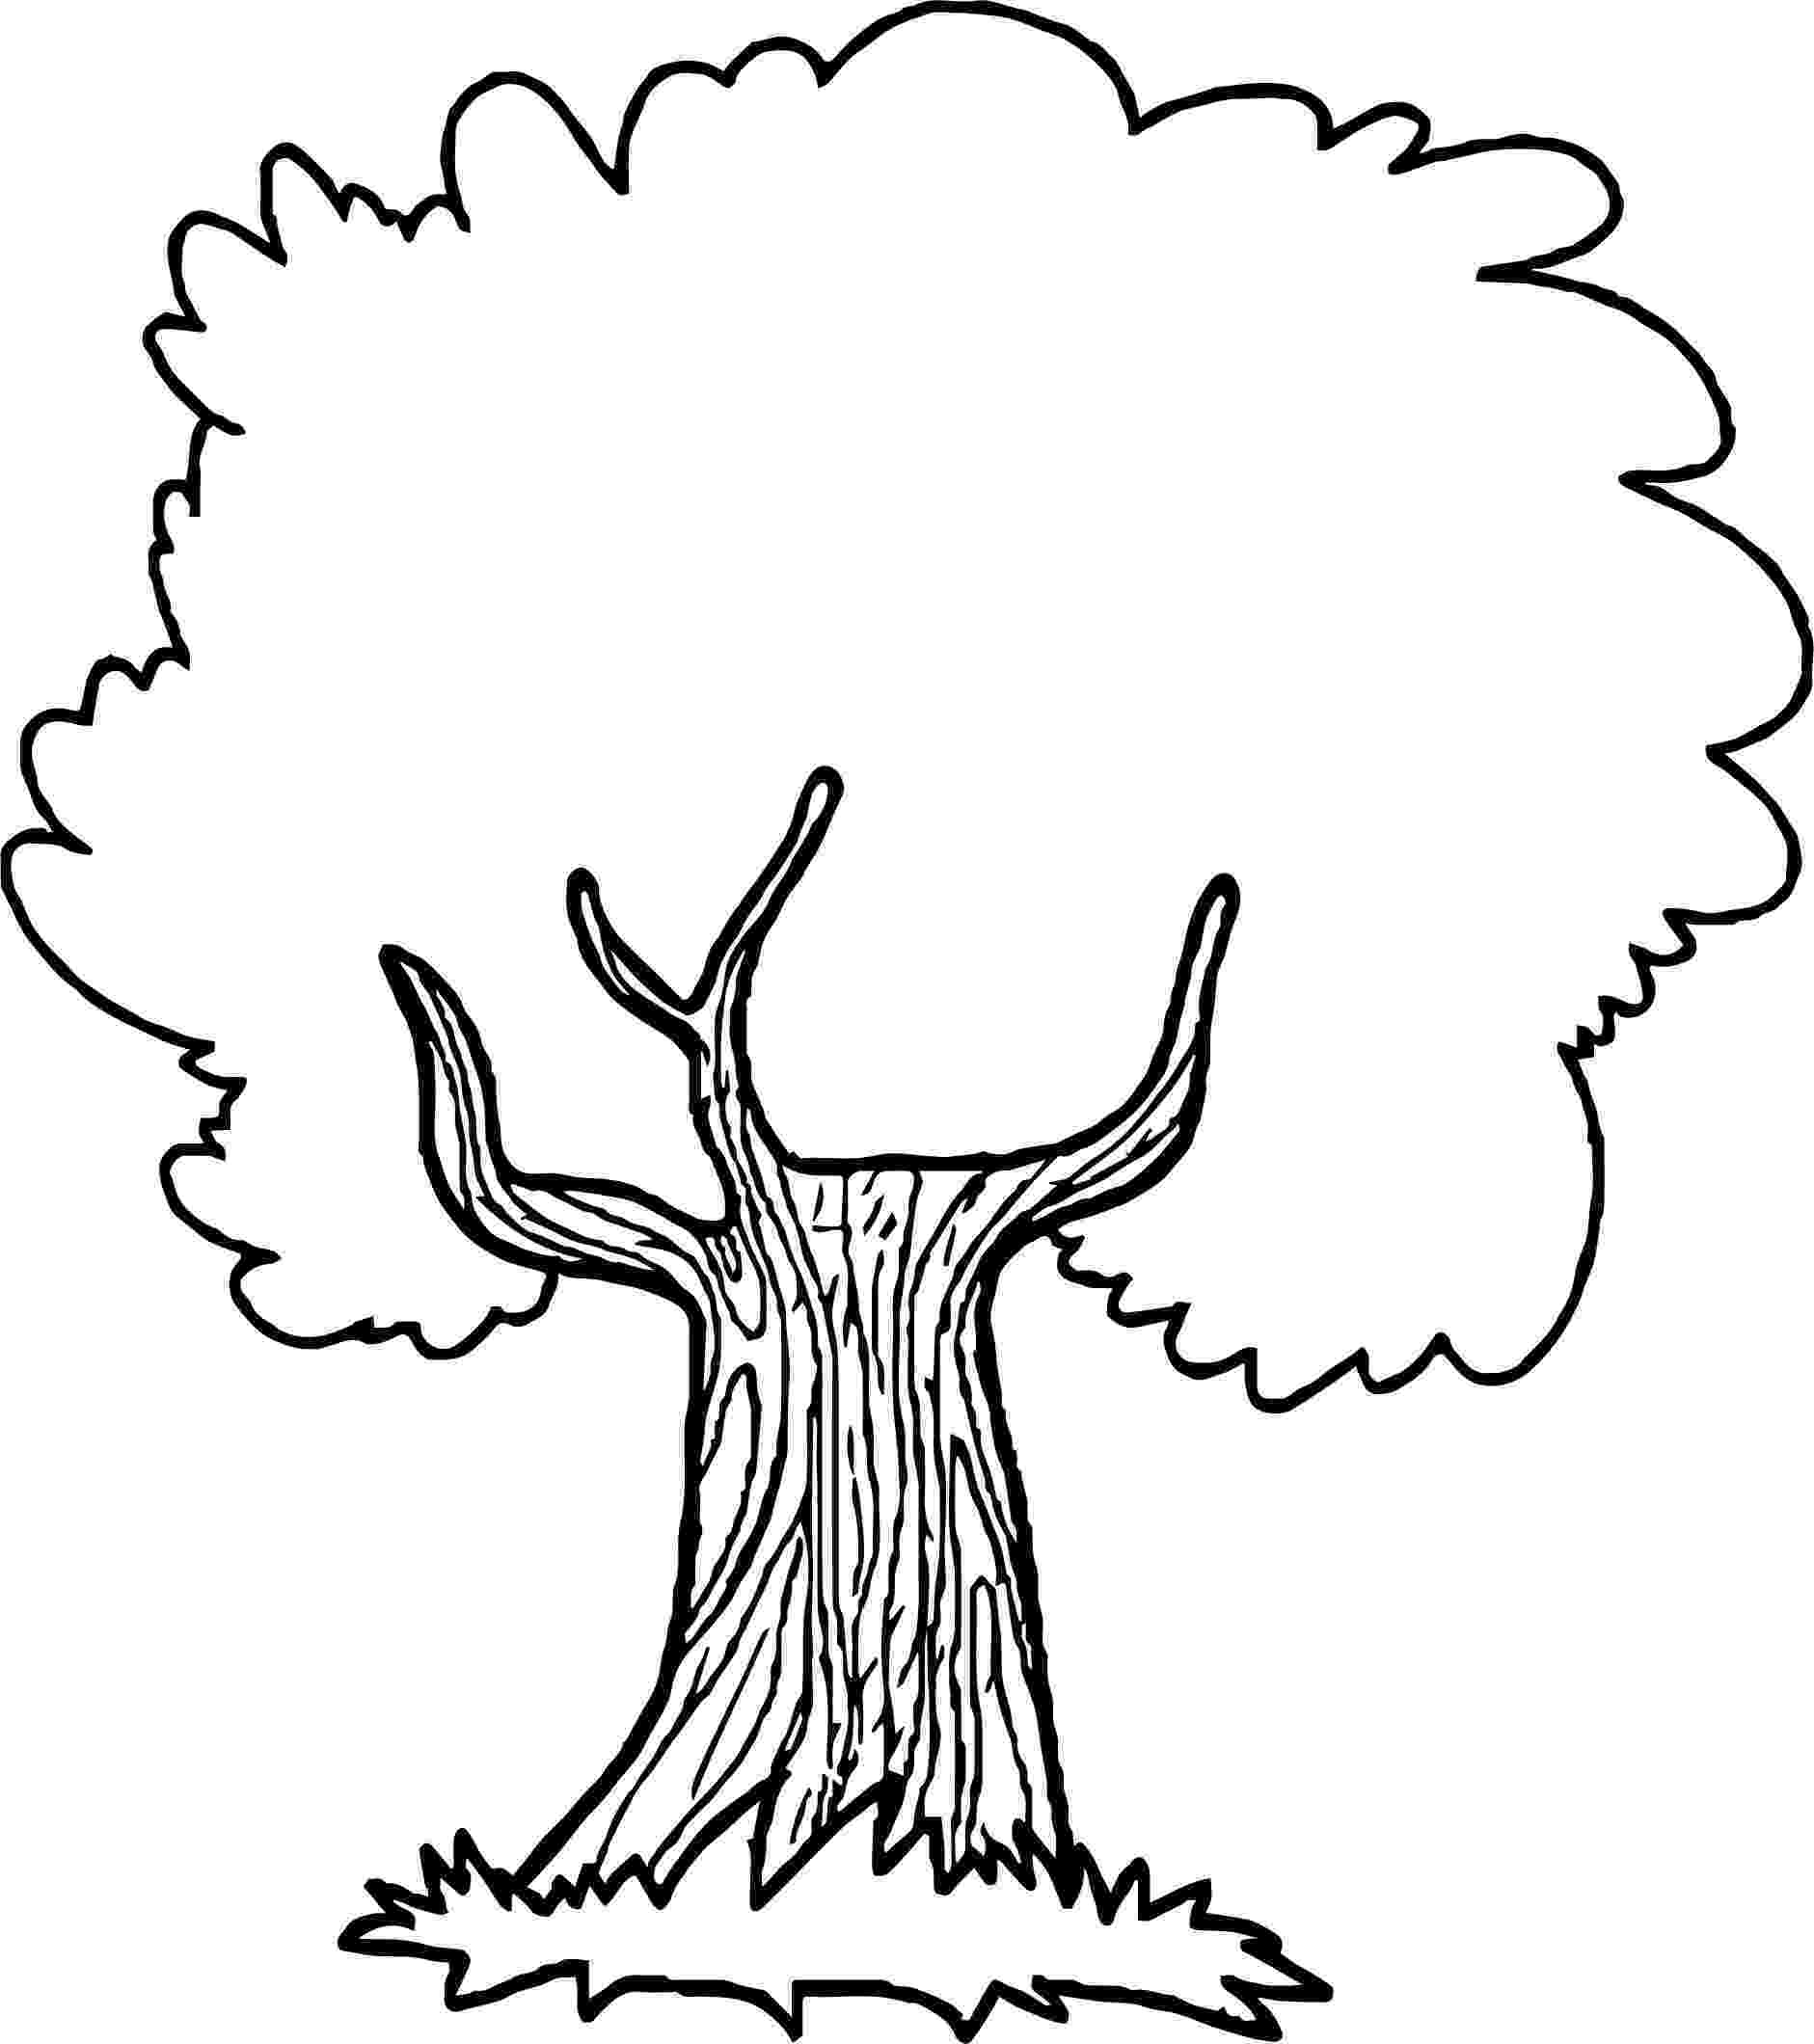 free coloring pages le tree trees coloring pages download and print trees coloring pages tree coloring le pages free